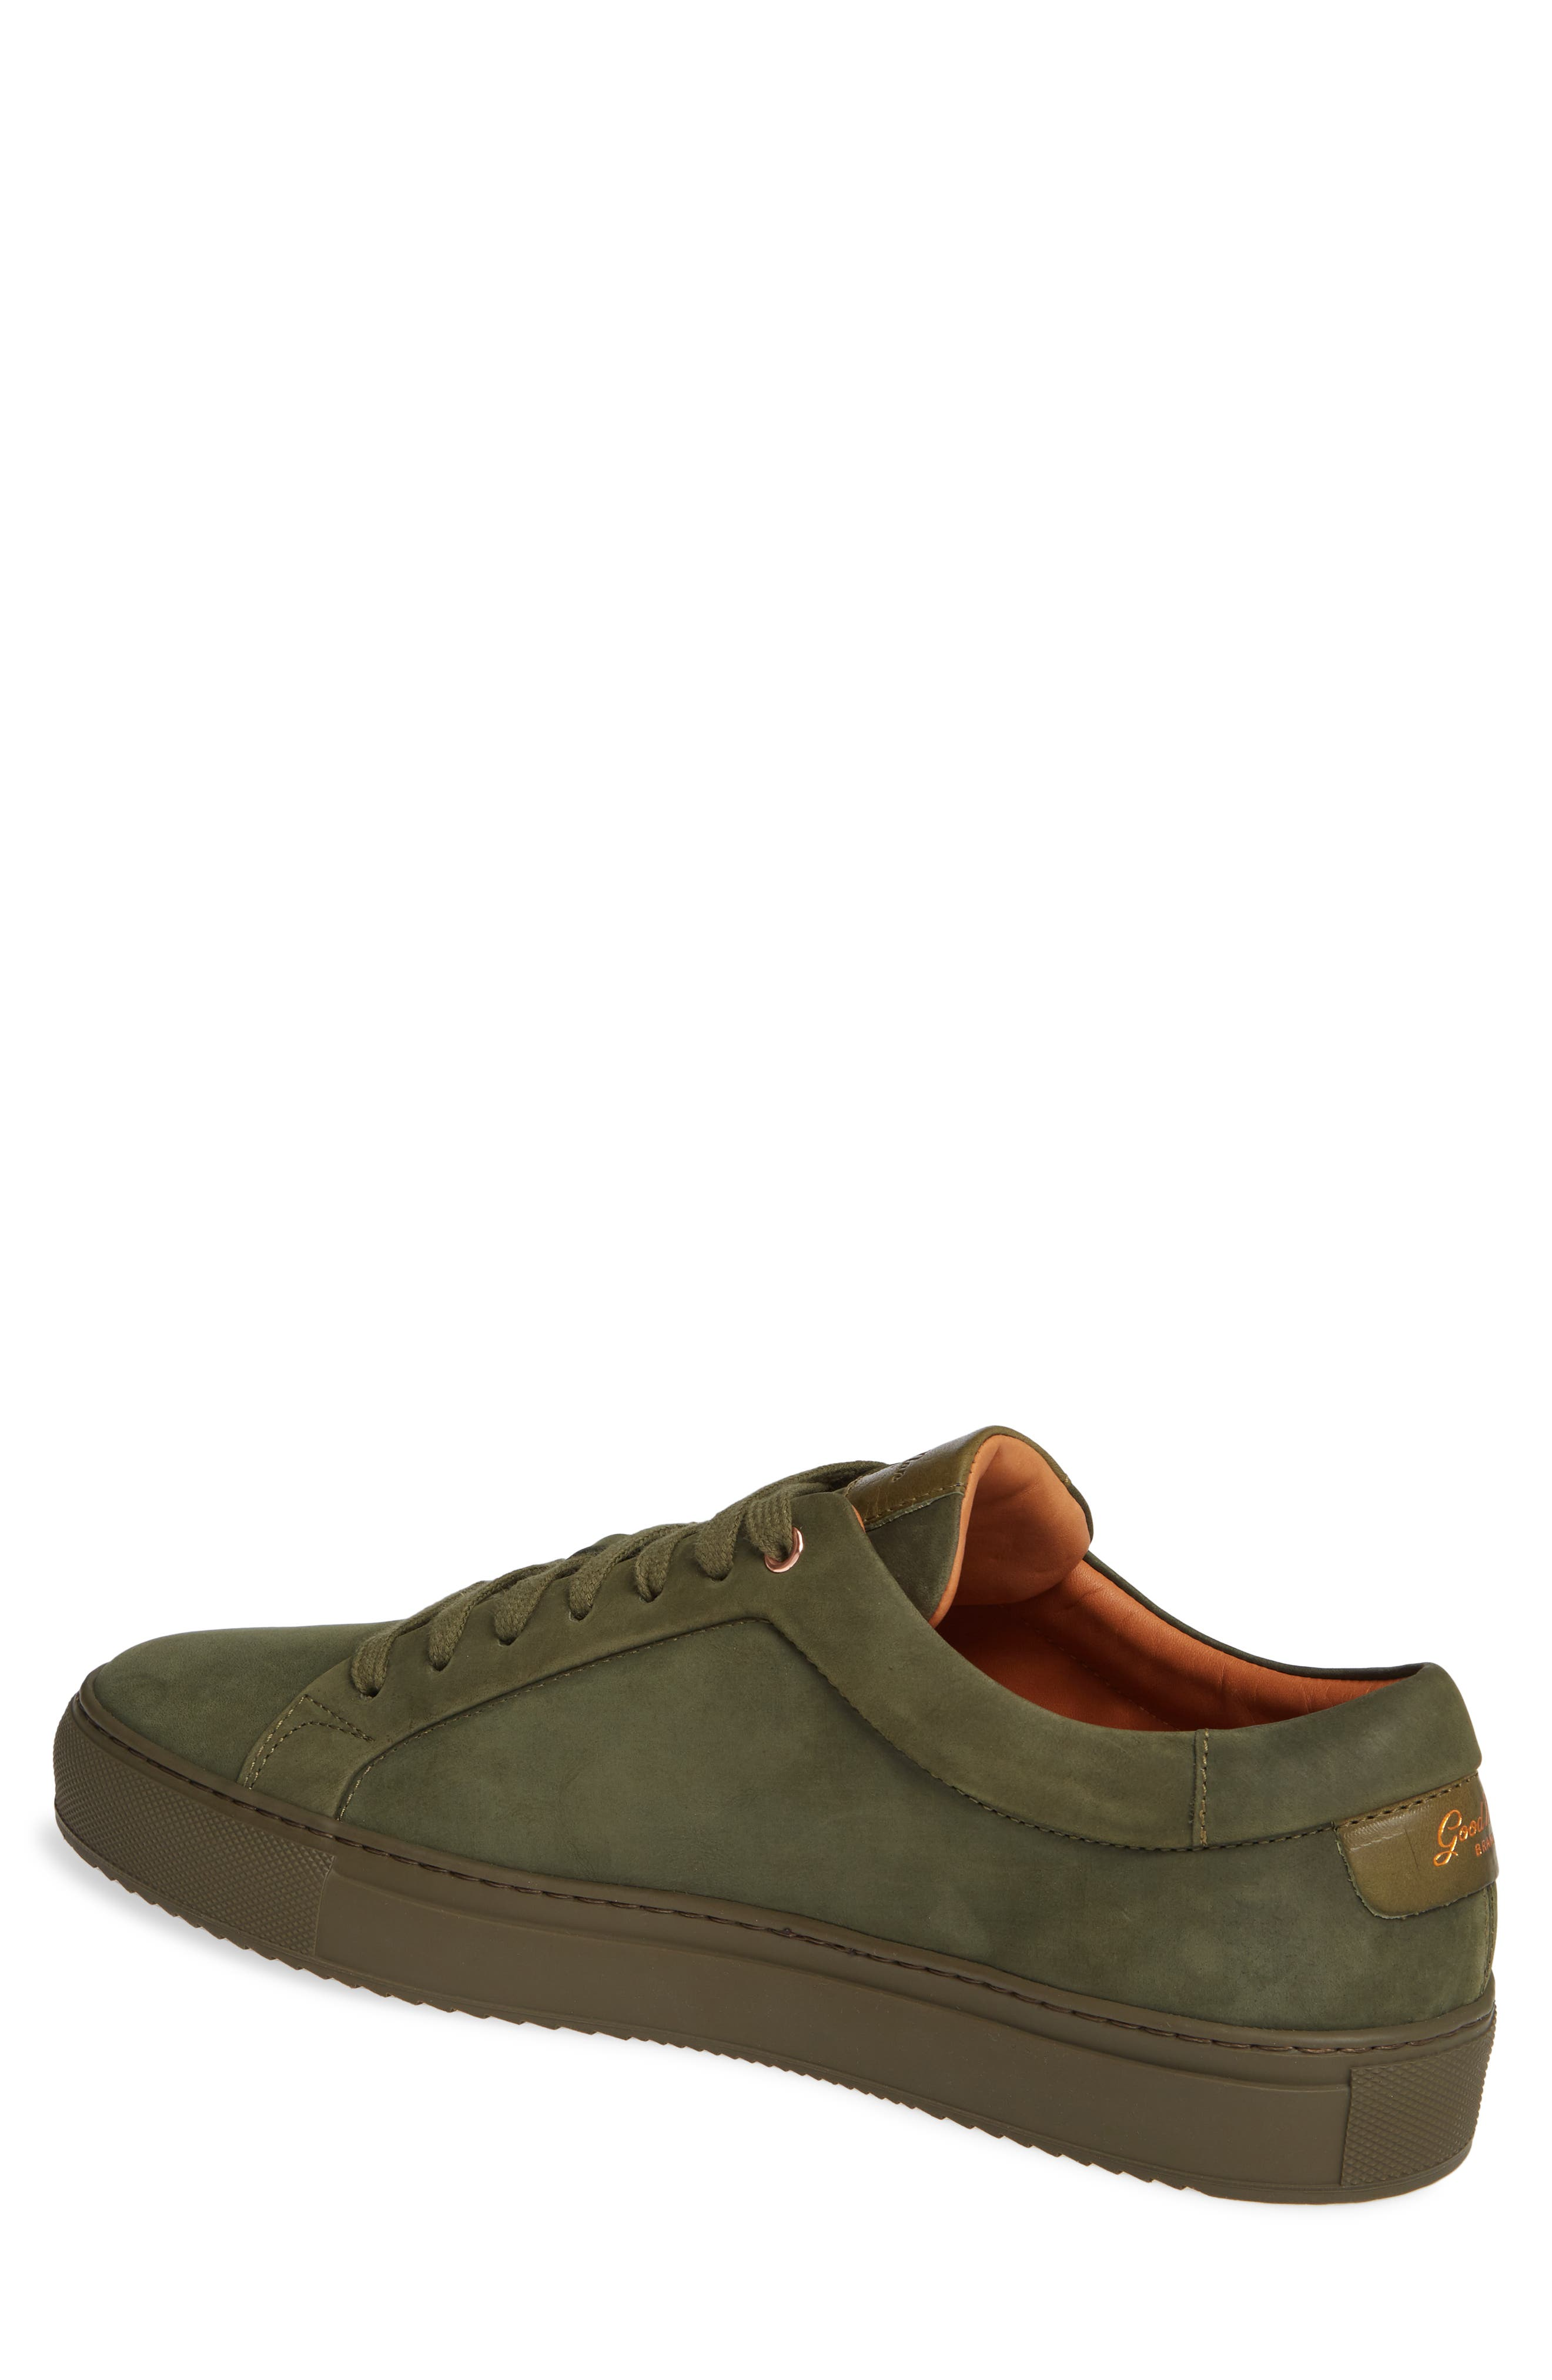 Sure Shot Lo Sneaker,                             Alternate thumbnail 2, color,                             MILITARY GREEN LEATHER